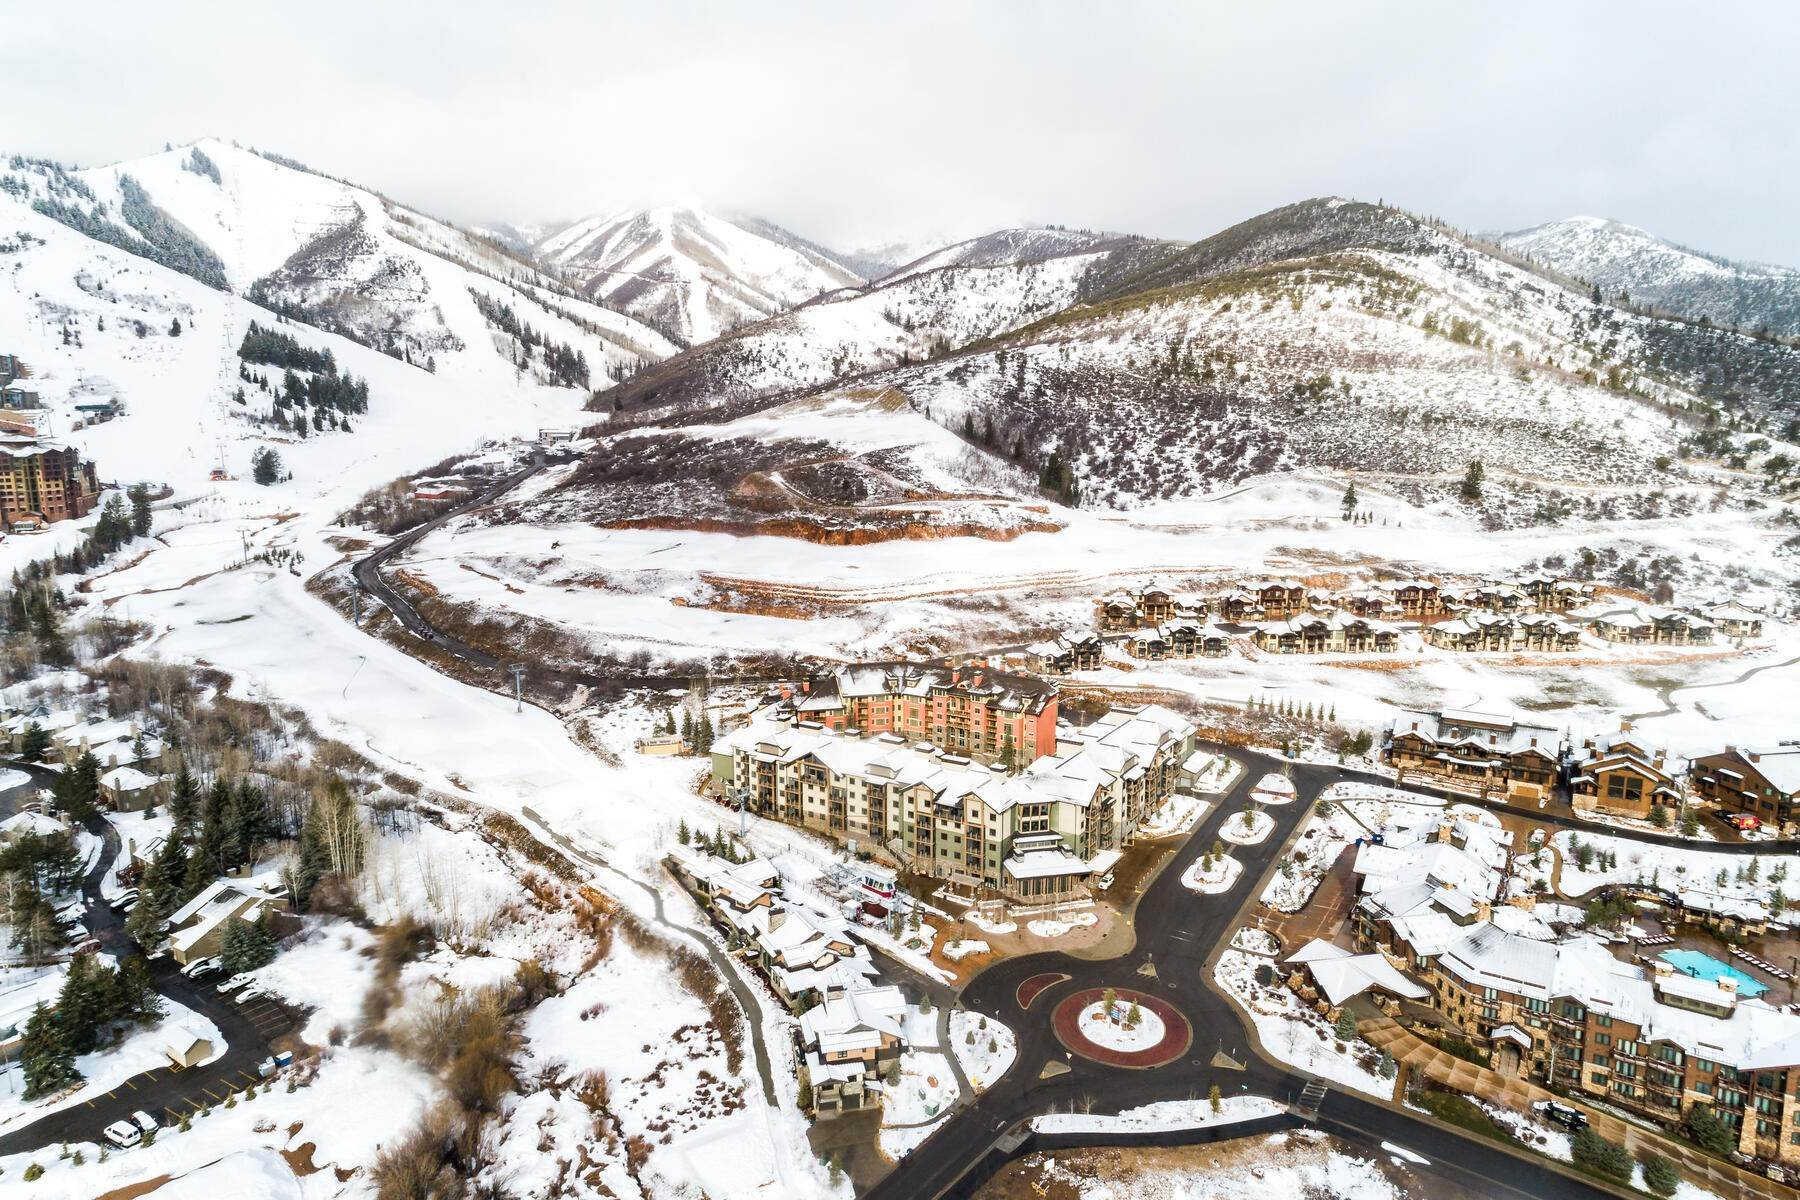 10. Condominiums for Sale at Introducing Park City's Newest Boutique Ski Hotel, The Ascent Park City! 4080 N Cooper Lane #232 Park City, Utah 84098 United States